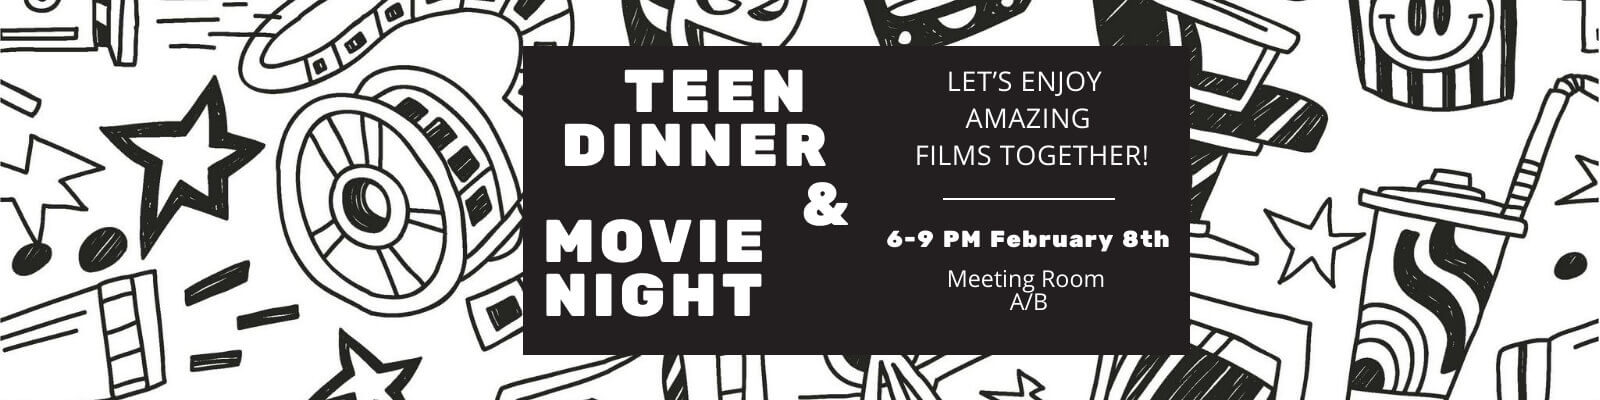 Teen's Event | Teen Dinner & Movie Night | February 8th 2019